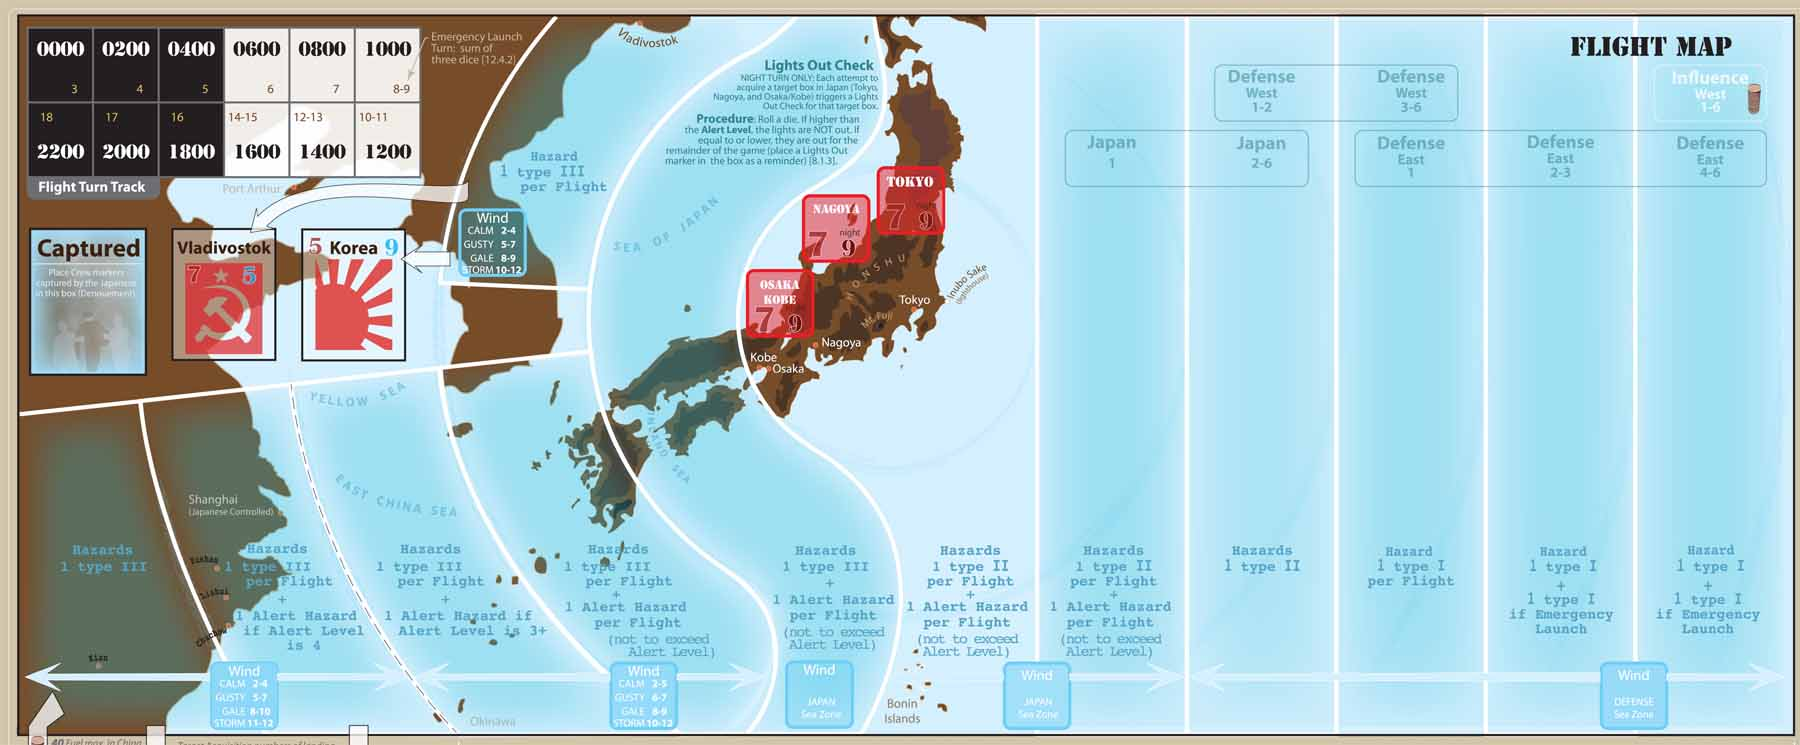 Playing the Story in GMT's Enemy Coast Ahead: The Doolittle ... on battle of wake island, battle of attu map, battle of iwo jima, bombing of tokyo in world war ii, solomon islands campaign, battle of peleliu, battle of manila map, midway map, battle of angaur map, battle of okinawa, battle of coral sea map, iwo jima map, allied invasion of sicily map, battle of stalingrad map, battle of midway, guadalcanal map, first battle of el alamein map, doolittle b-25 wreckage, doolittle mission, battle of the java sea map, battle of saipan, attack on pearl harbor, battle of tarawa, naval battle of guadalcanal, ted w. lawson, battle of leyte gulf, d-day map, pacific war, battle of the coral sea, battle for henderson field map, guadalcanal campaign, allied invasion of italy map, thirty seconds over tokyo, tokyo map, battle of the philippine sea, battle of leyte gulf map, siege of sevastopol map, doolittle raiders, atomic bombings of hiroshima and nagasaki,